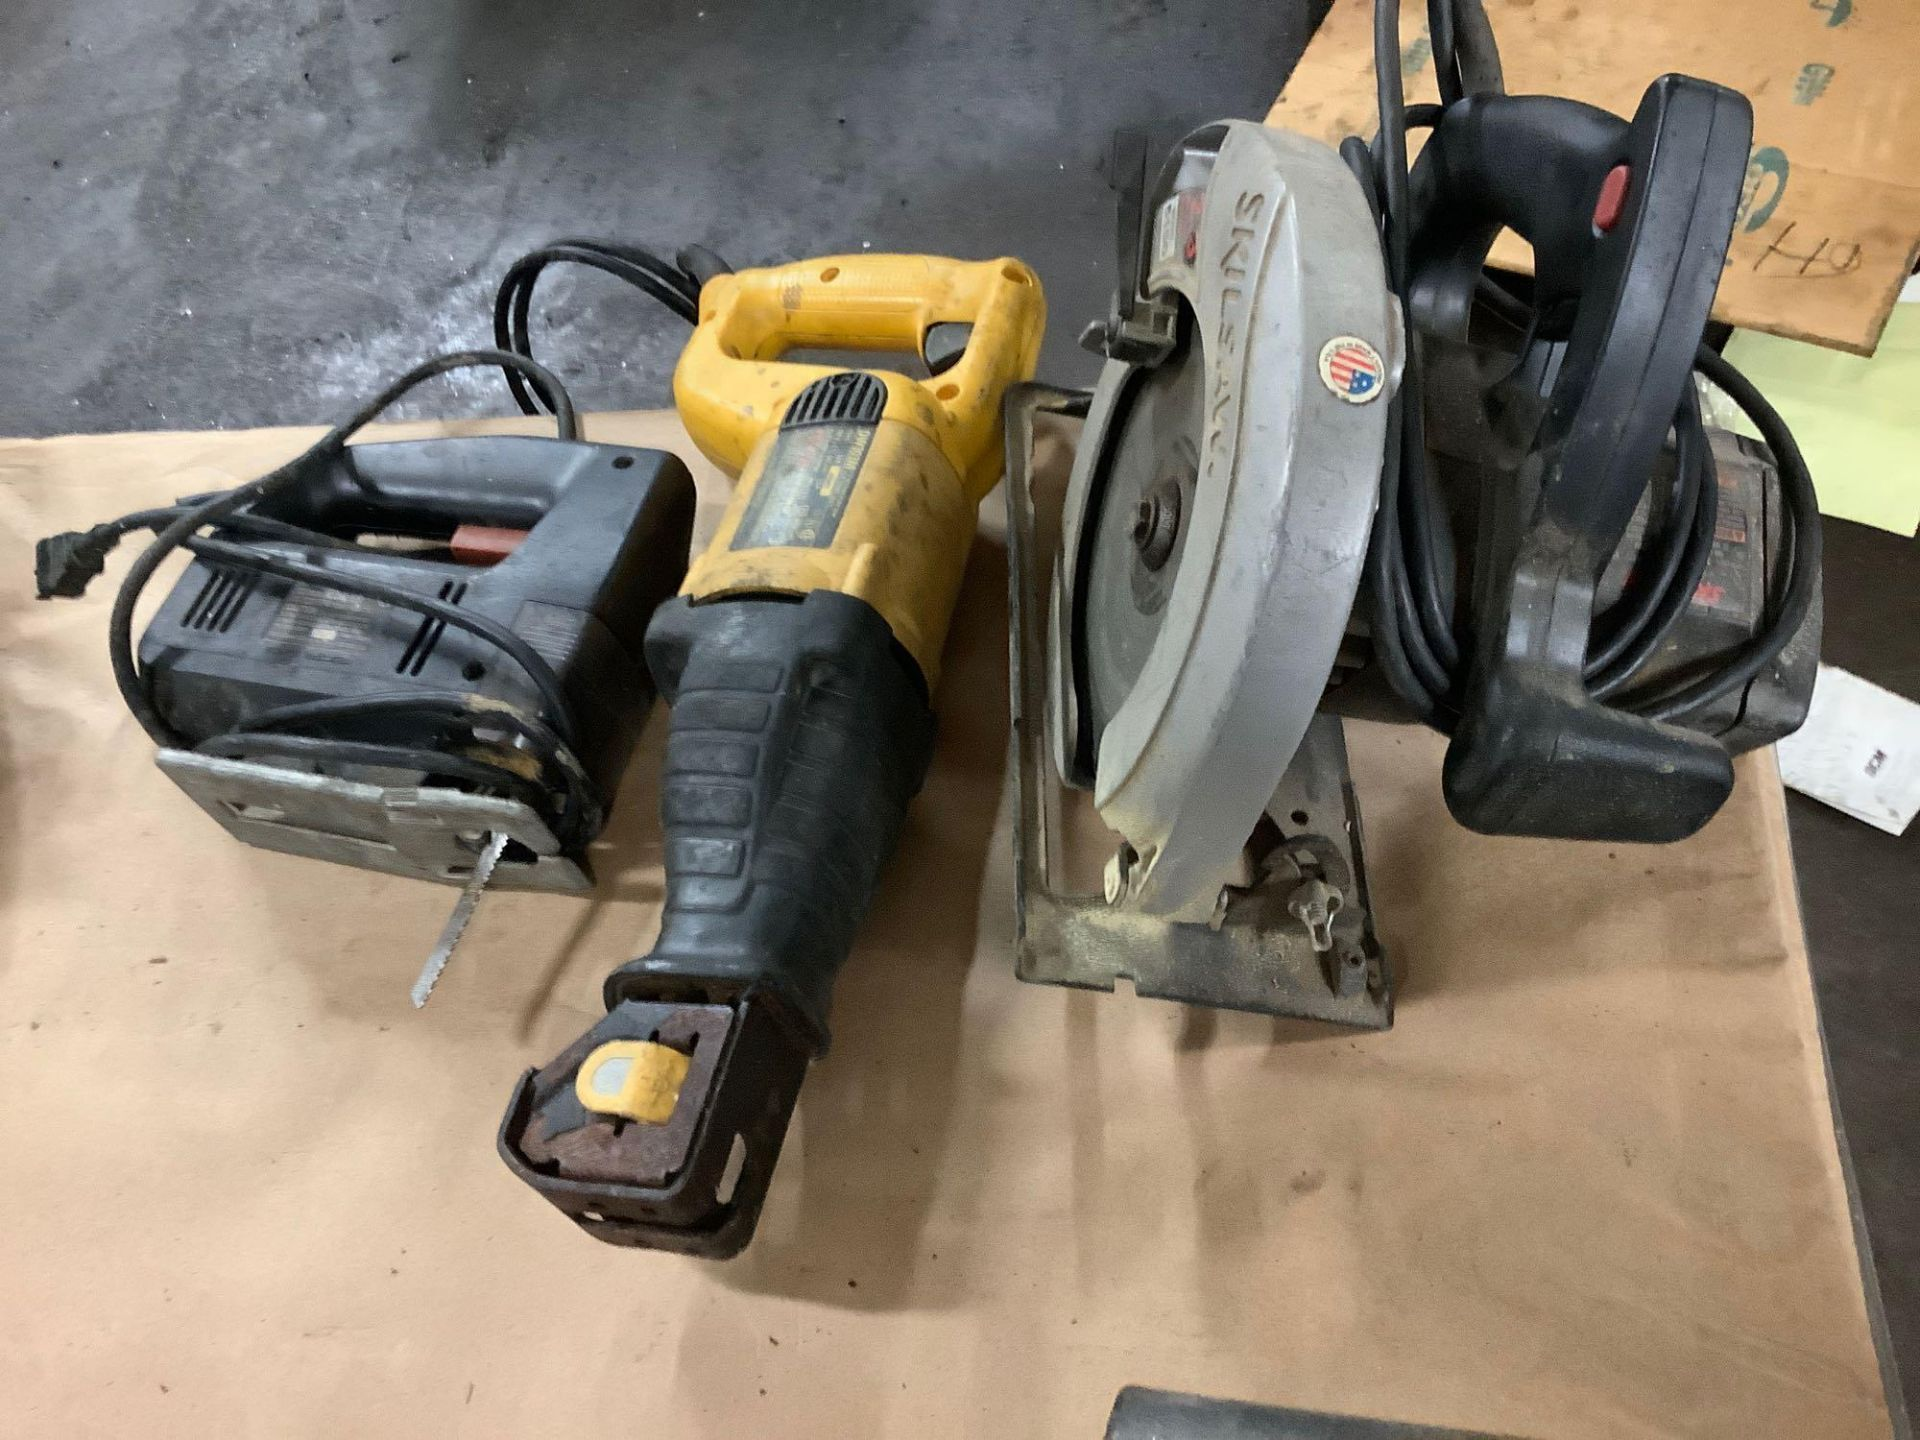 Lot of 3 Hand Saws - Image 5 of 5